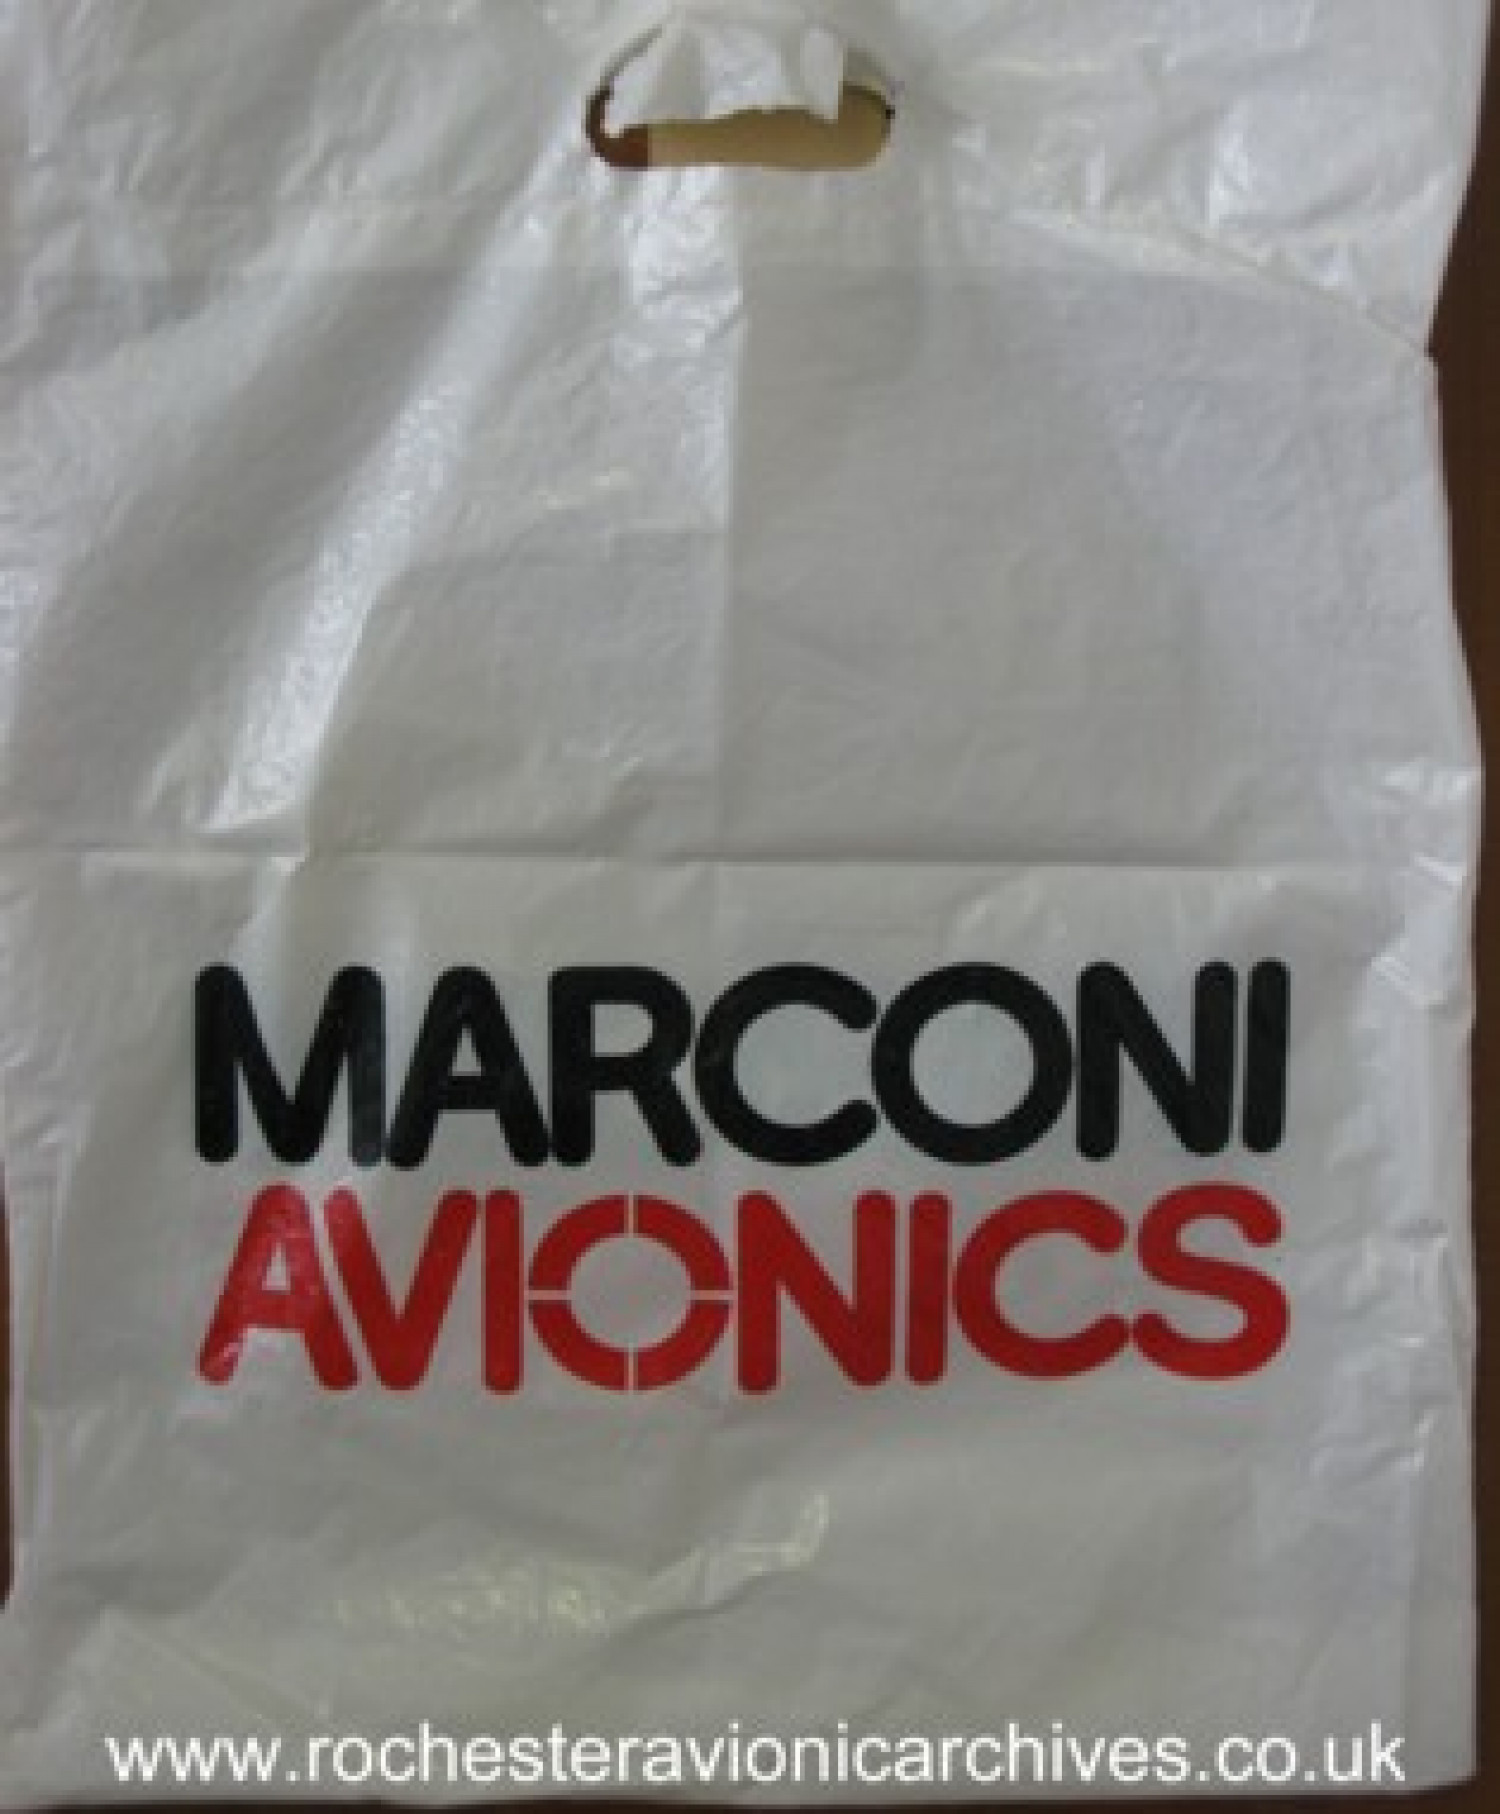 Marconi Avionics Carrier Bag